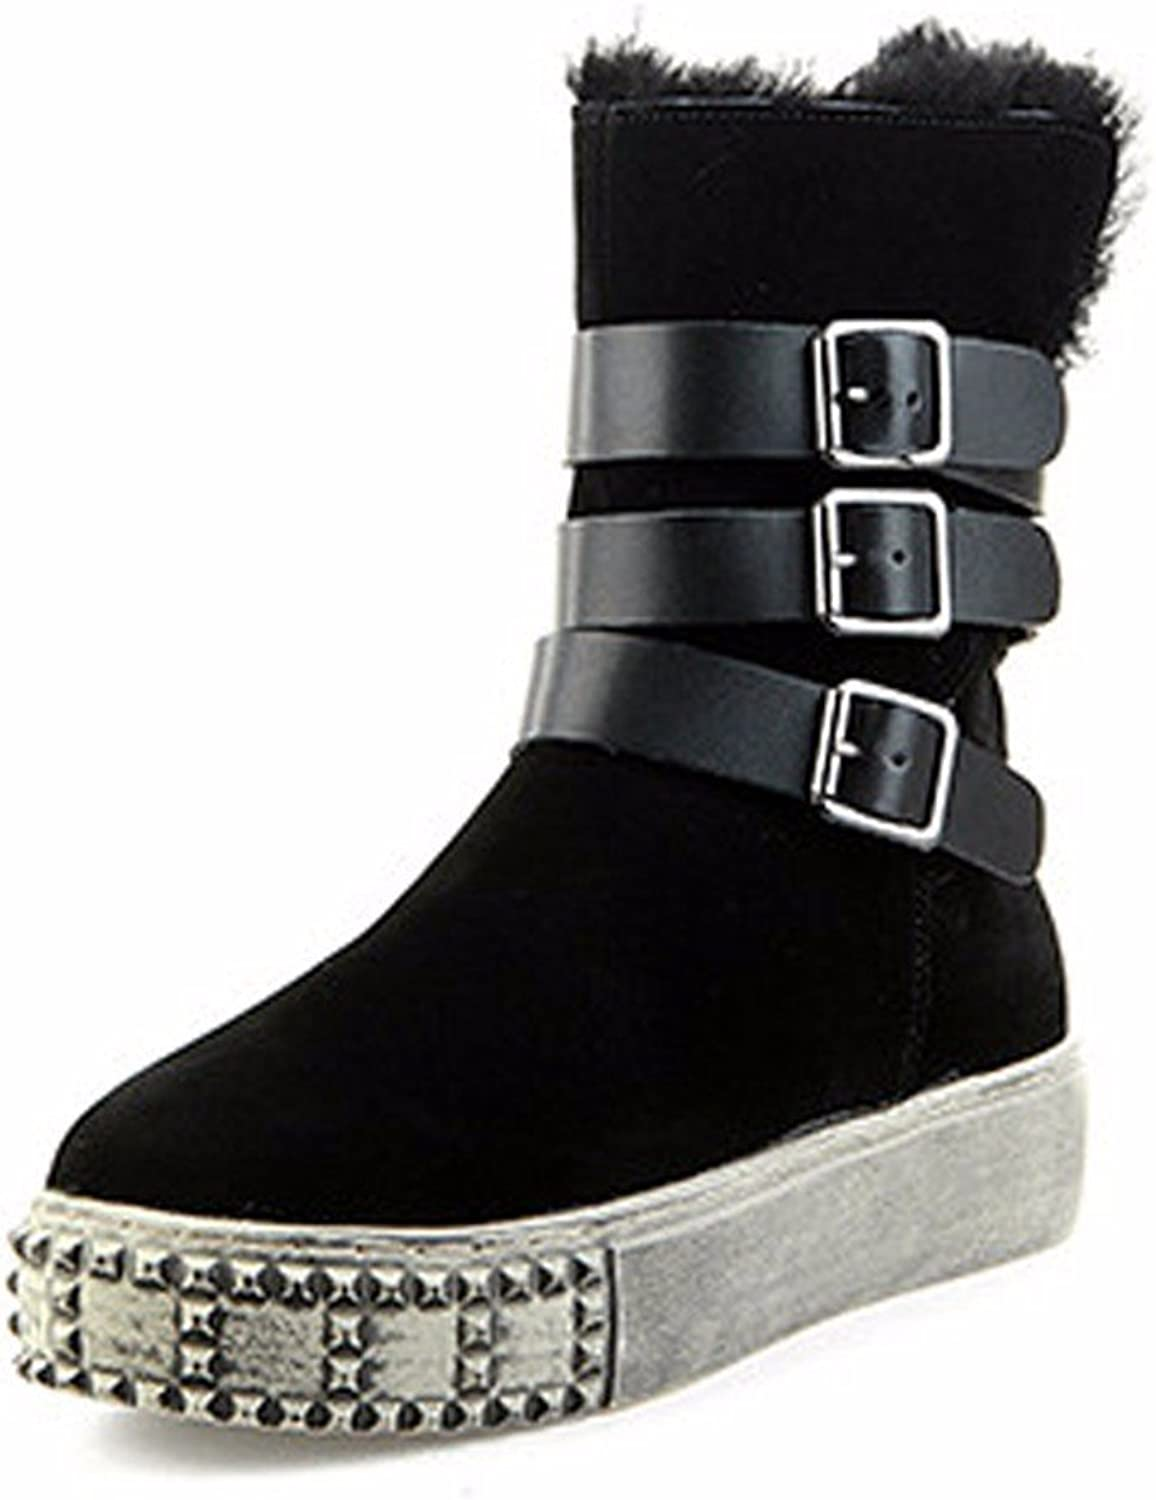 YJNB New Low In Autumn And Winter With Flat Round Head Rivet Belt Buckle Boot In Thick Warm Boots